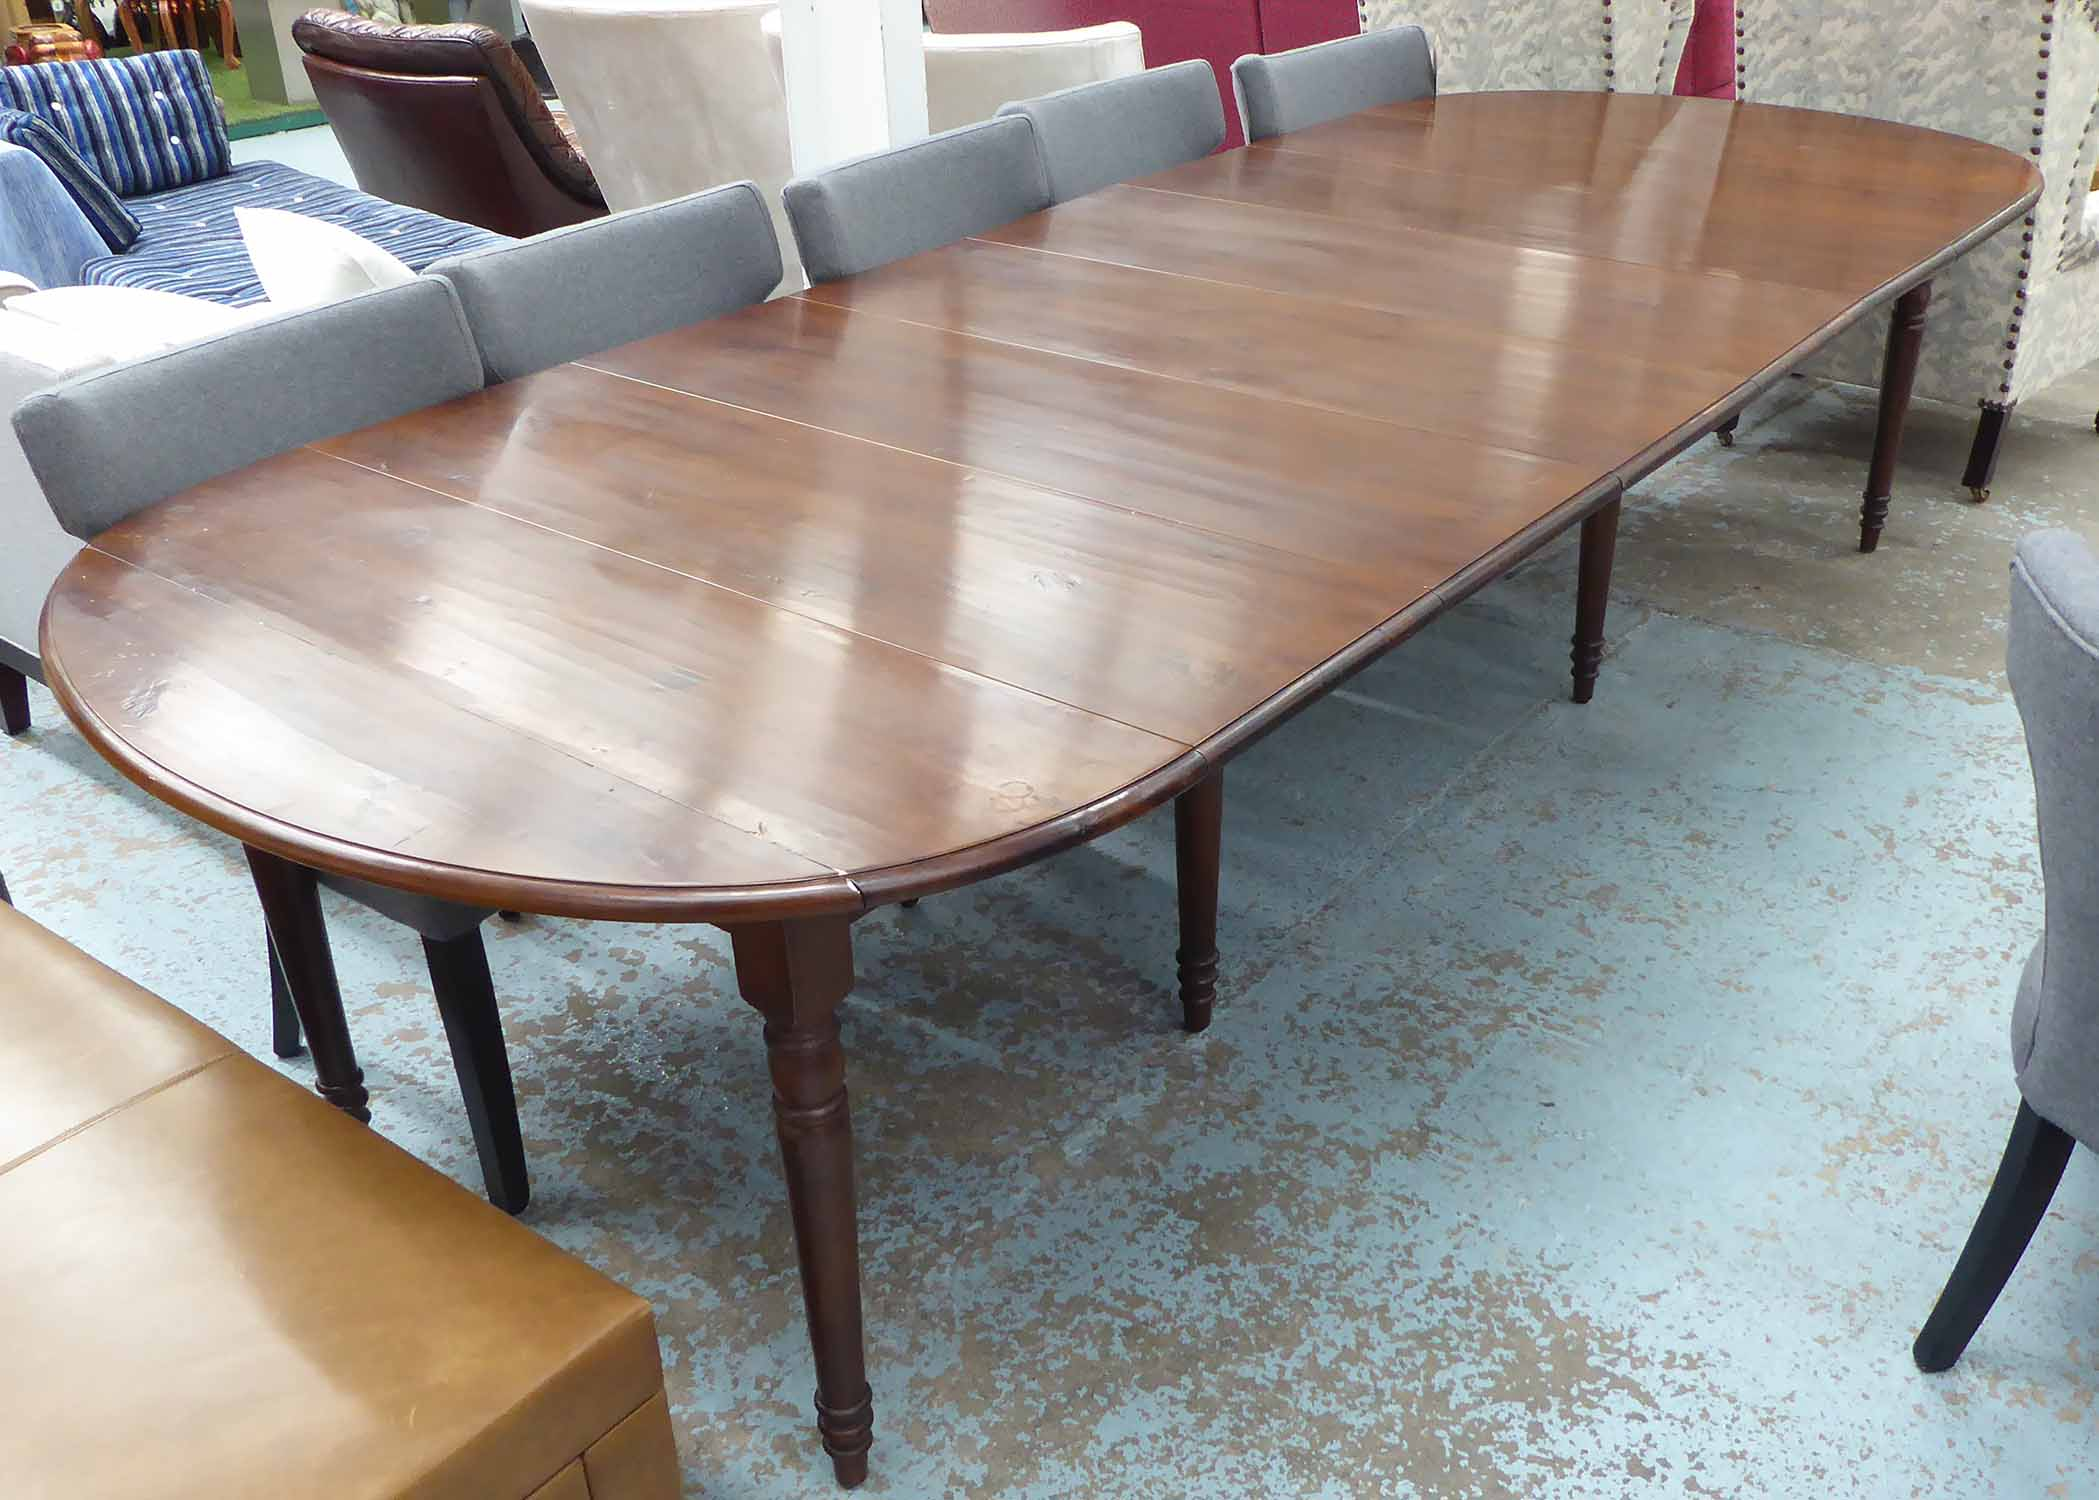 Dining Table From Oka Model Petworth French Style In